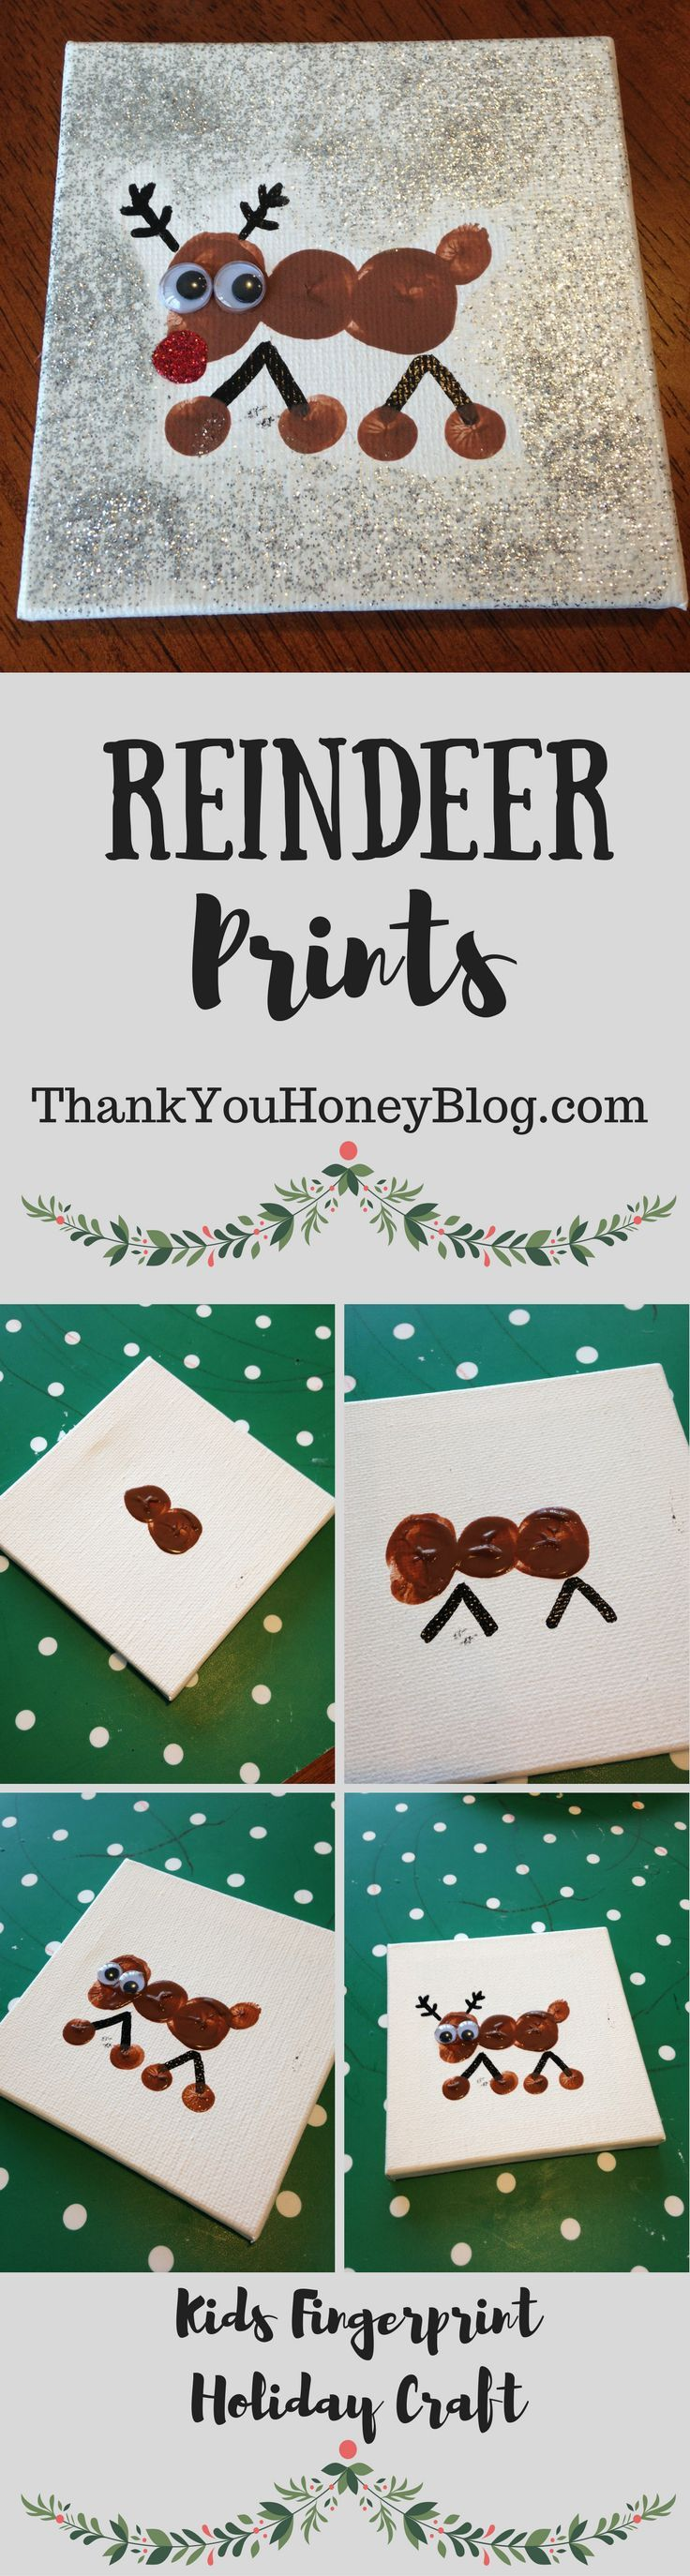 Click through & PIN IT to read later & Follow + Subscribe! Reindeer Prints Kids Holiday Craft, Holiday, Christmas, Ornaments, Reindeer, Easy, Can Make, Gifts, Classrooms, DIY, Children, Fingerprints, Children's, Tutorials,